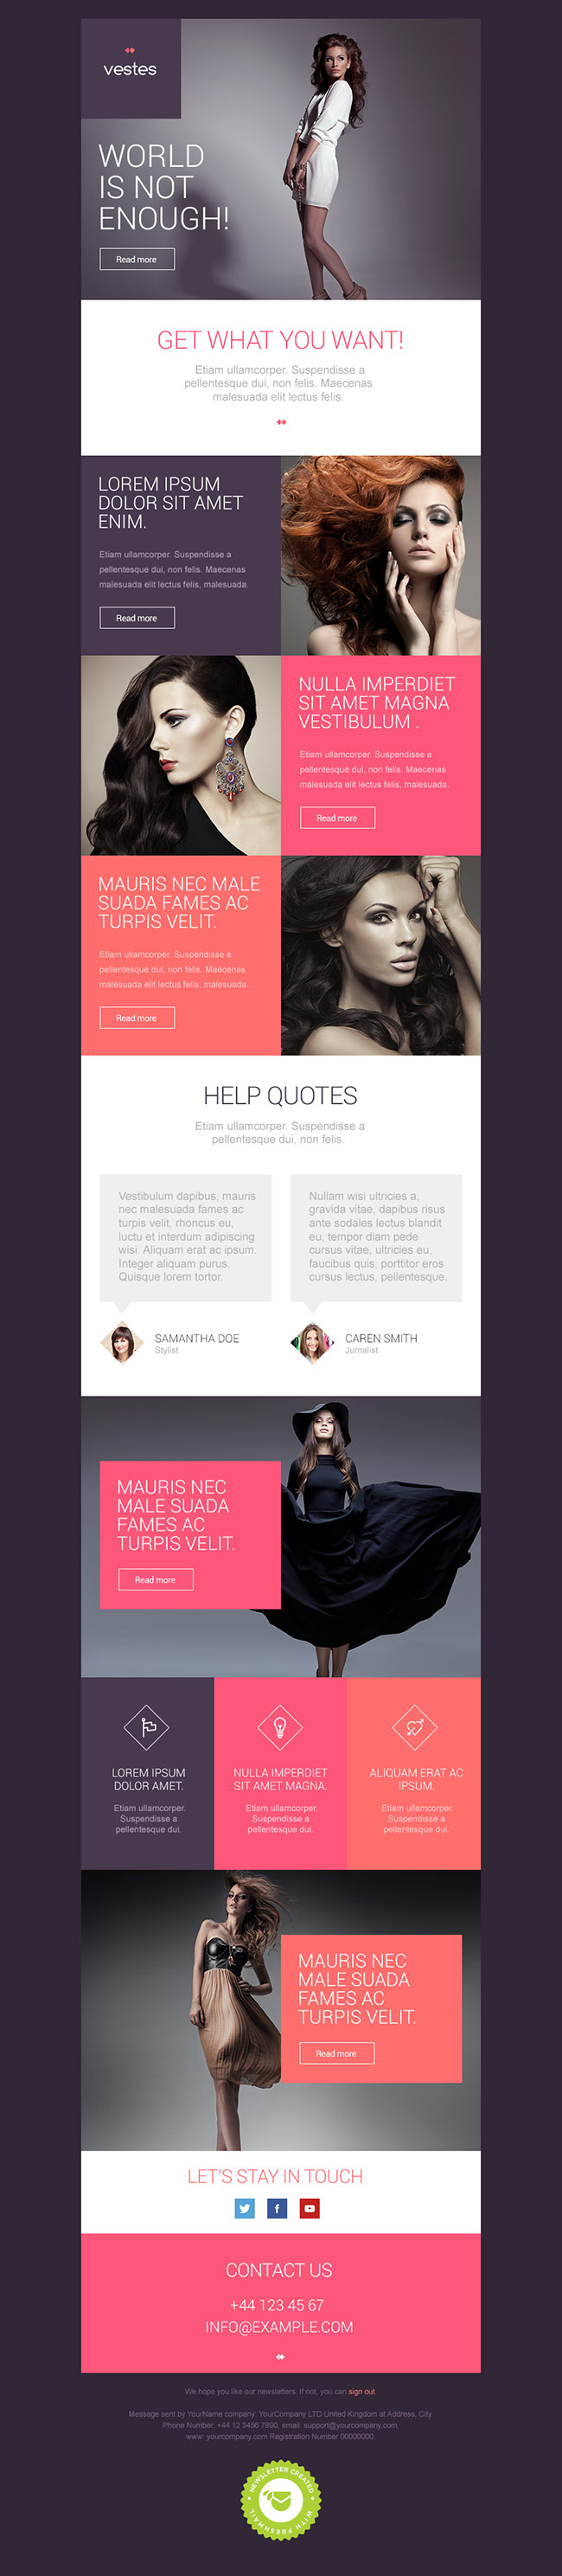 free email templates download html and psd